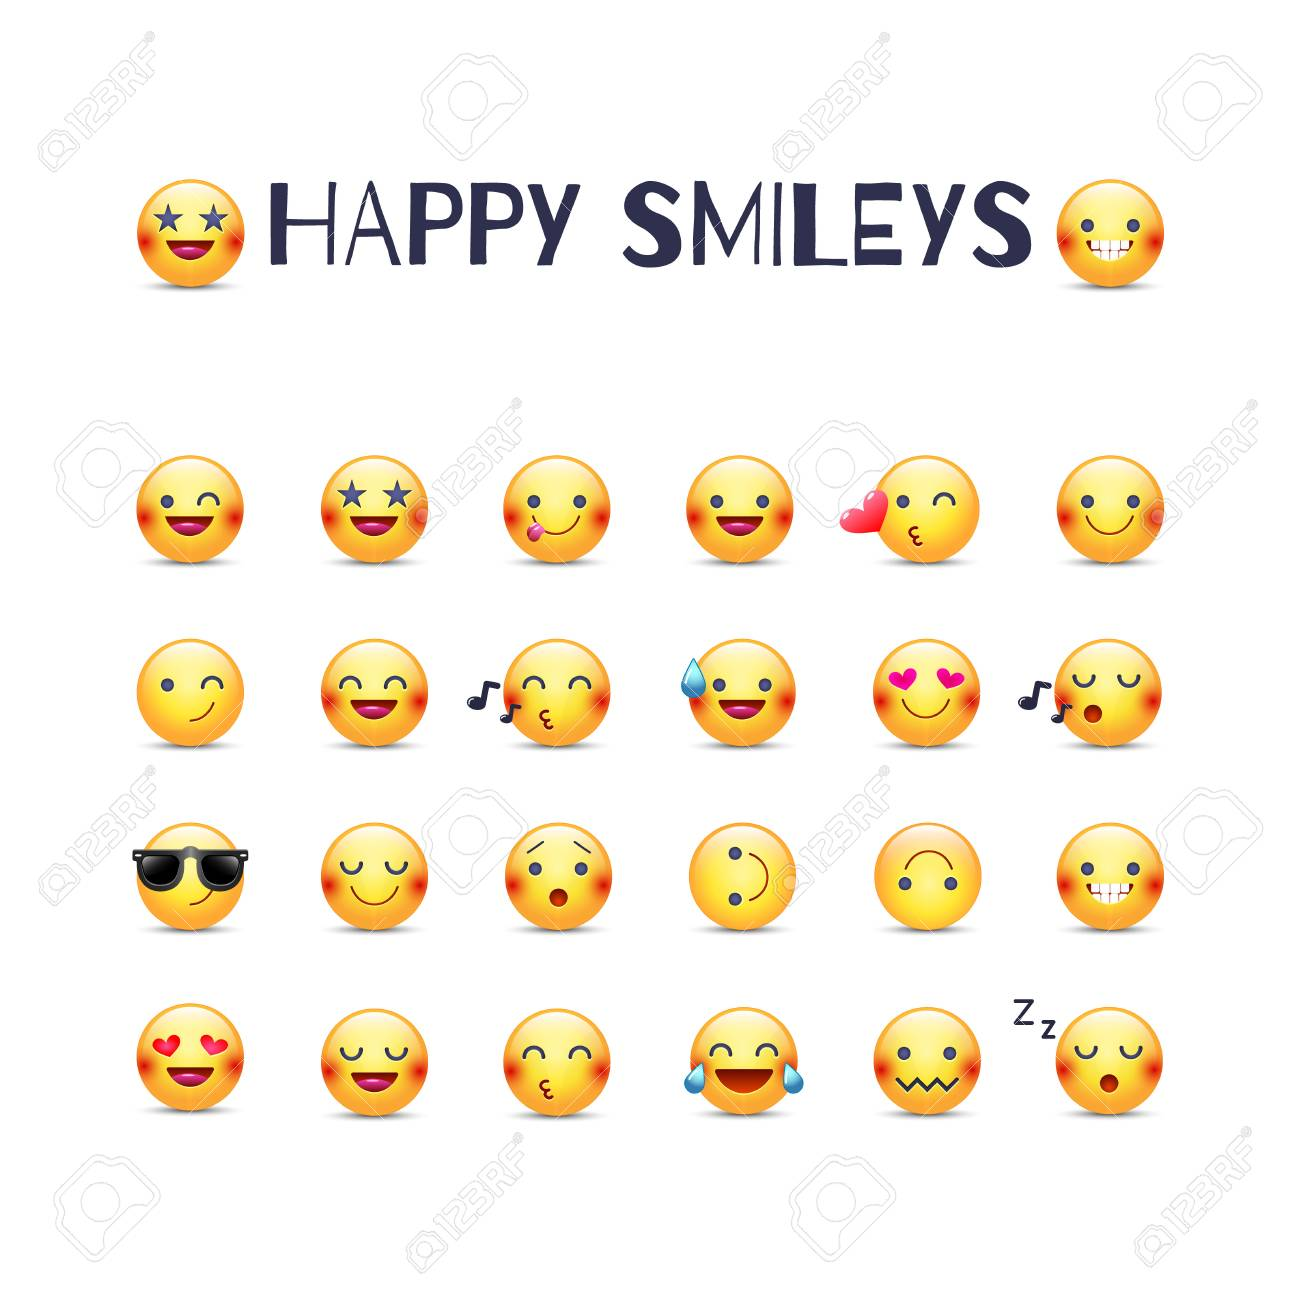 Happy smileys vector icon set. Joy emoticons pictograms collection. Happy round yellow smileys. Laughing, joyful, in love, cheerful, mischievous and others emoji face - 87214563